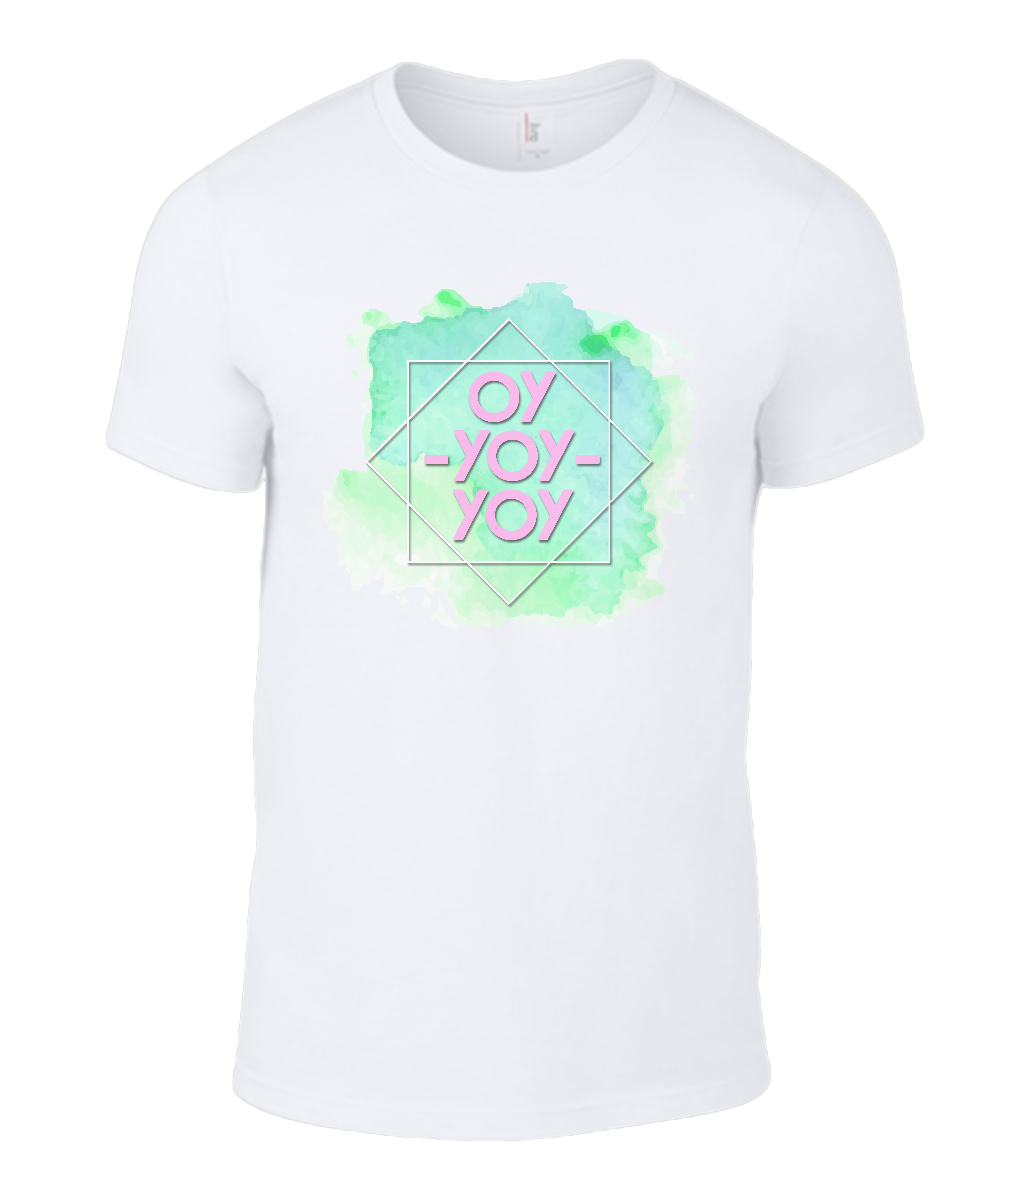 Round Neck T-Shirt - Oy Yoy Yoy - Lokshen Pudding UK - White